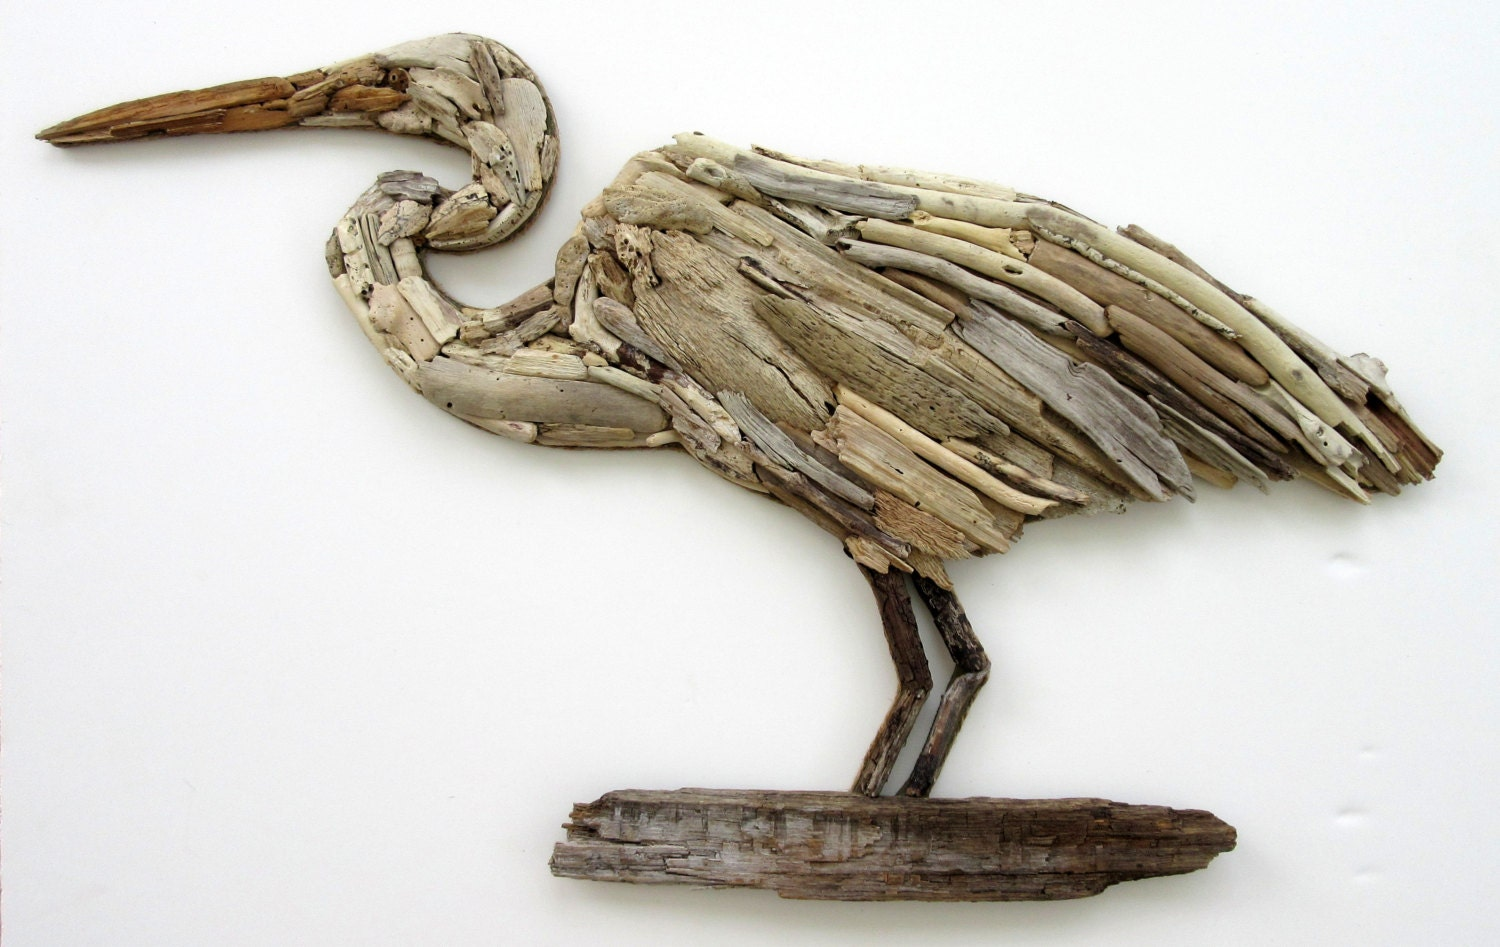 Coastal Wall Decor: Driftwood Heron Coastal Wall Decor